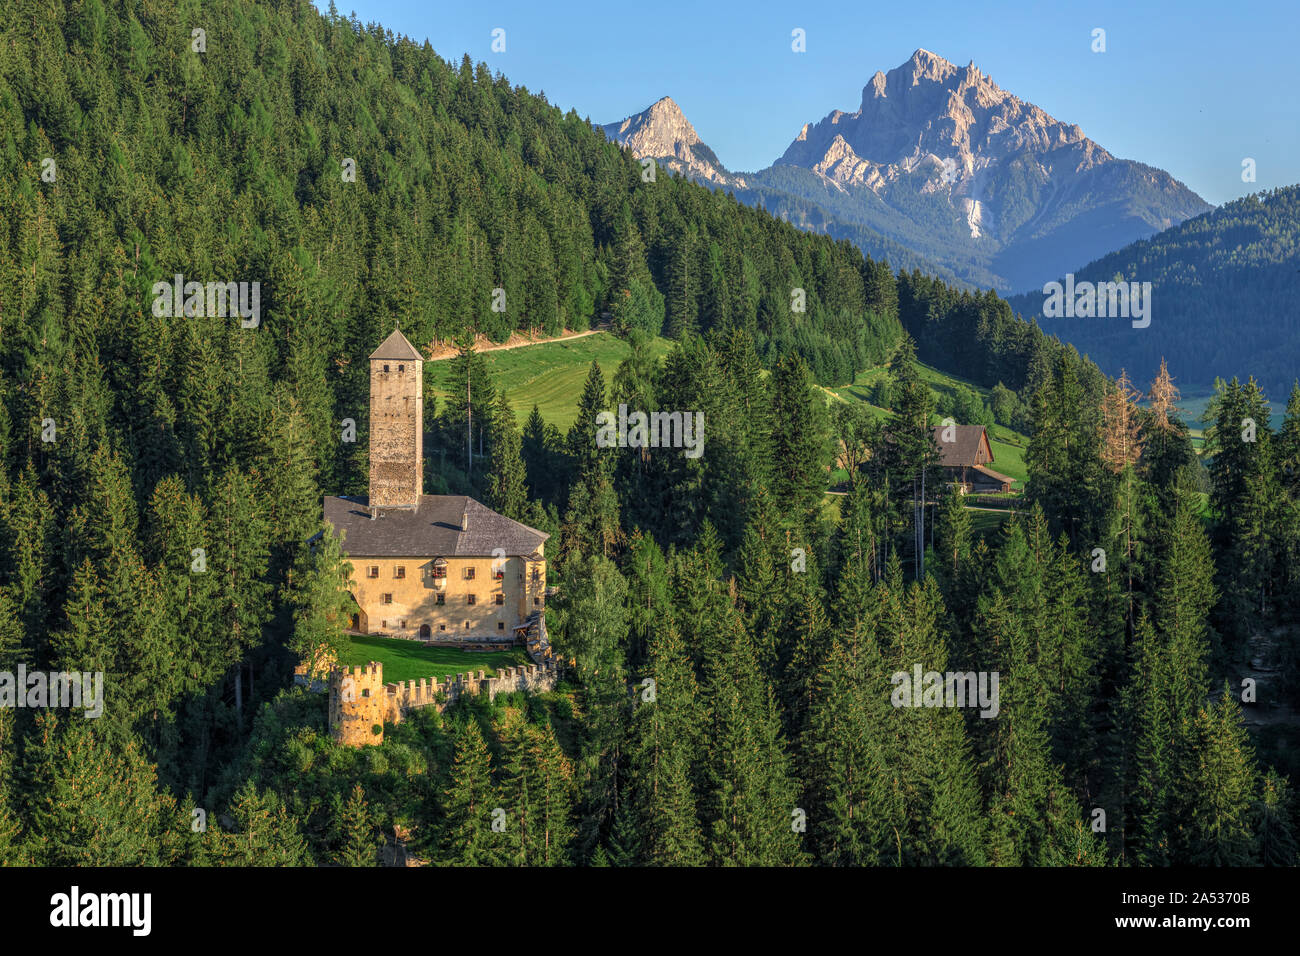 Welsperg Castle, South Tyrol, Italy, Europe Stock Photo